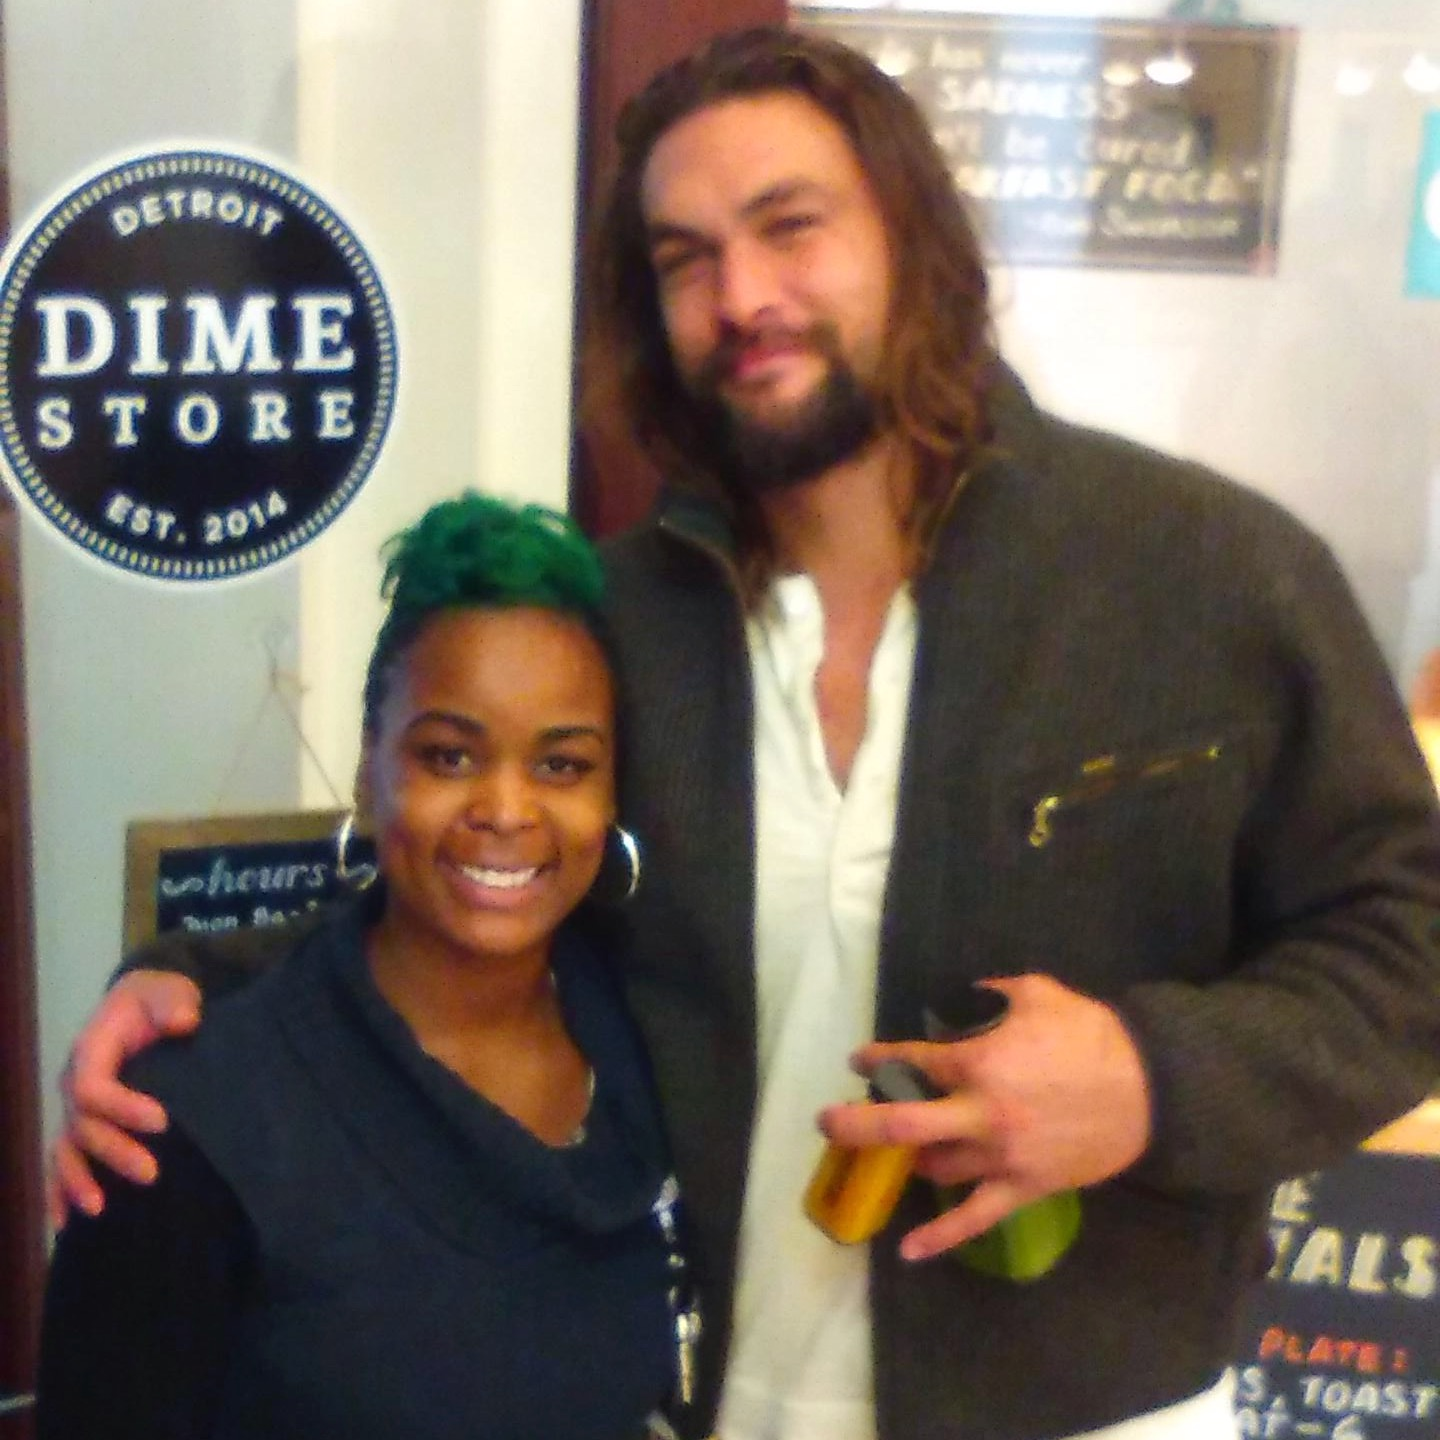 Jason Momoa, pka Khal Drogo, eats at Dime Store